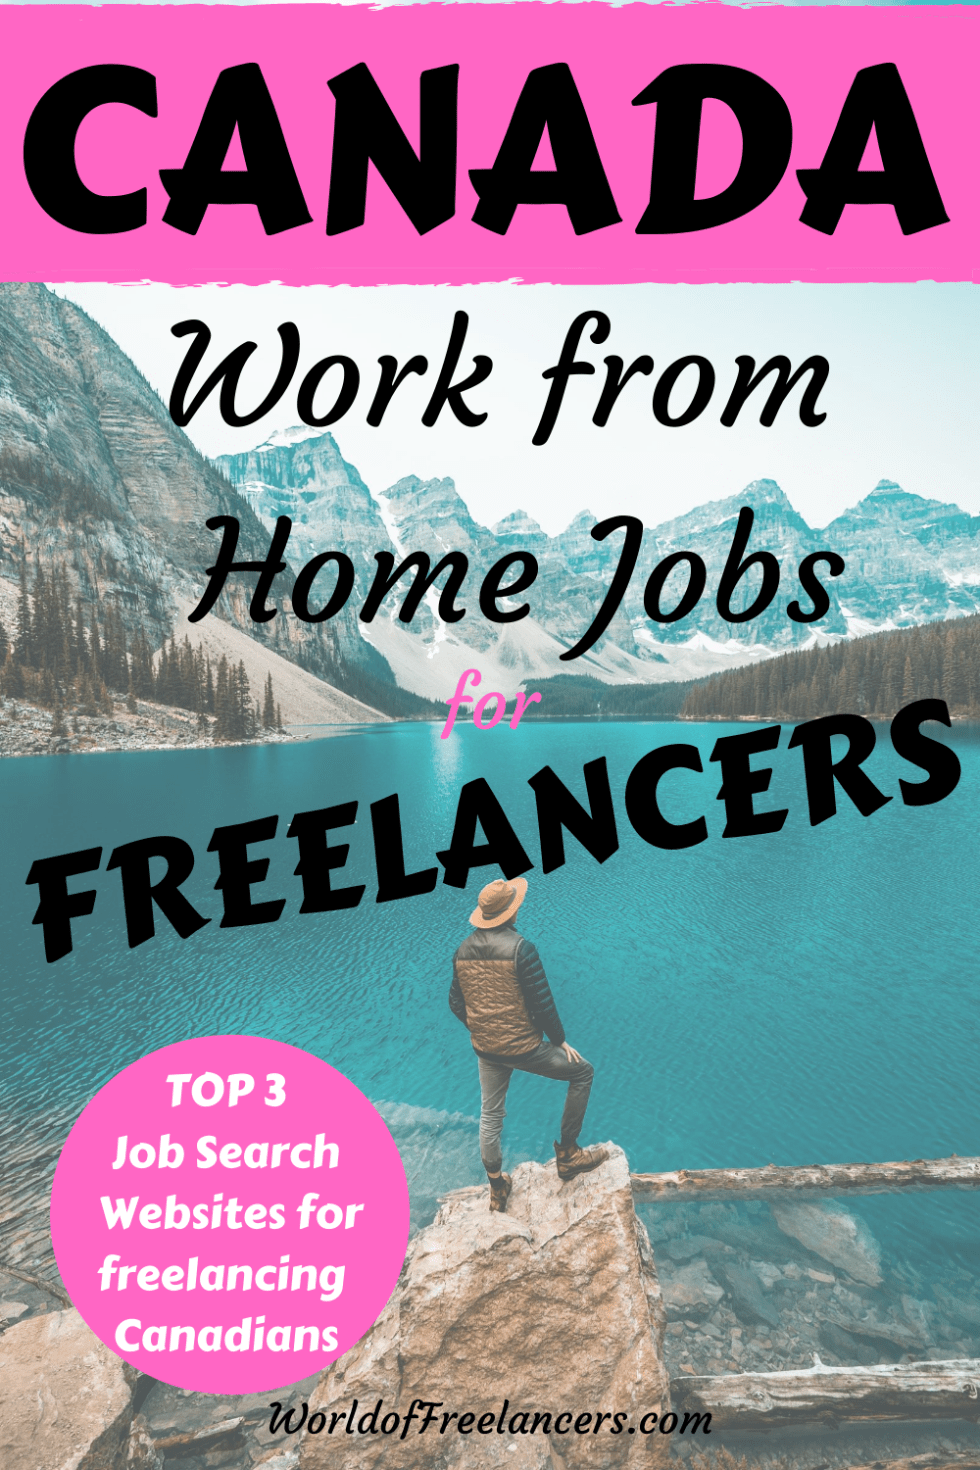 Canadian mountain and water scene with man in hat in foreground for Pinterest with text in pink, black and white saying Canada work from home jobs for freelancers - top 3 job search websites for freelancing Canadians